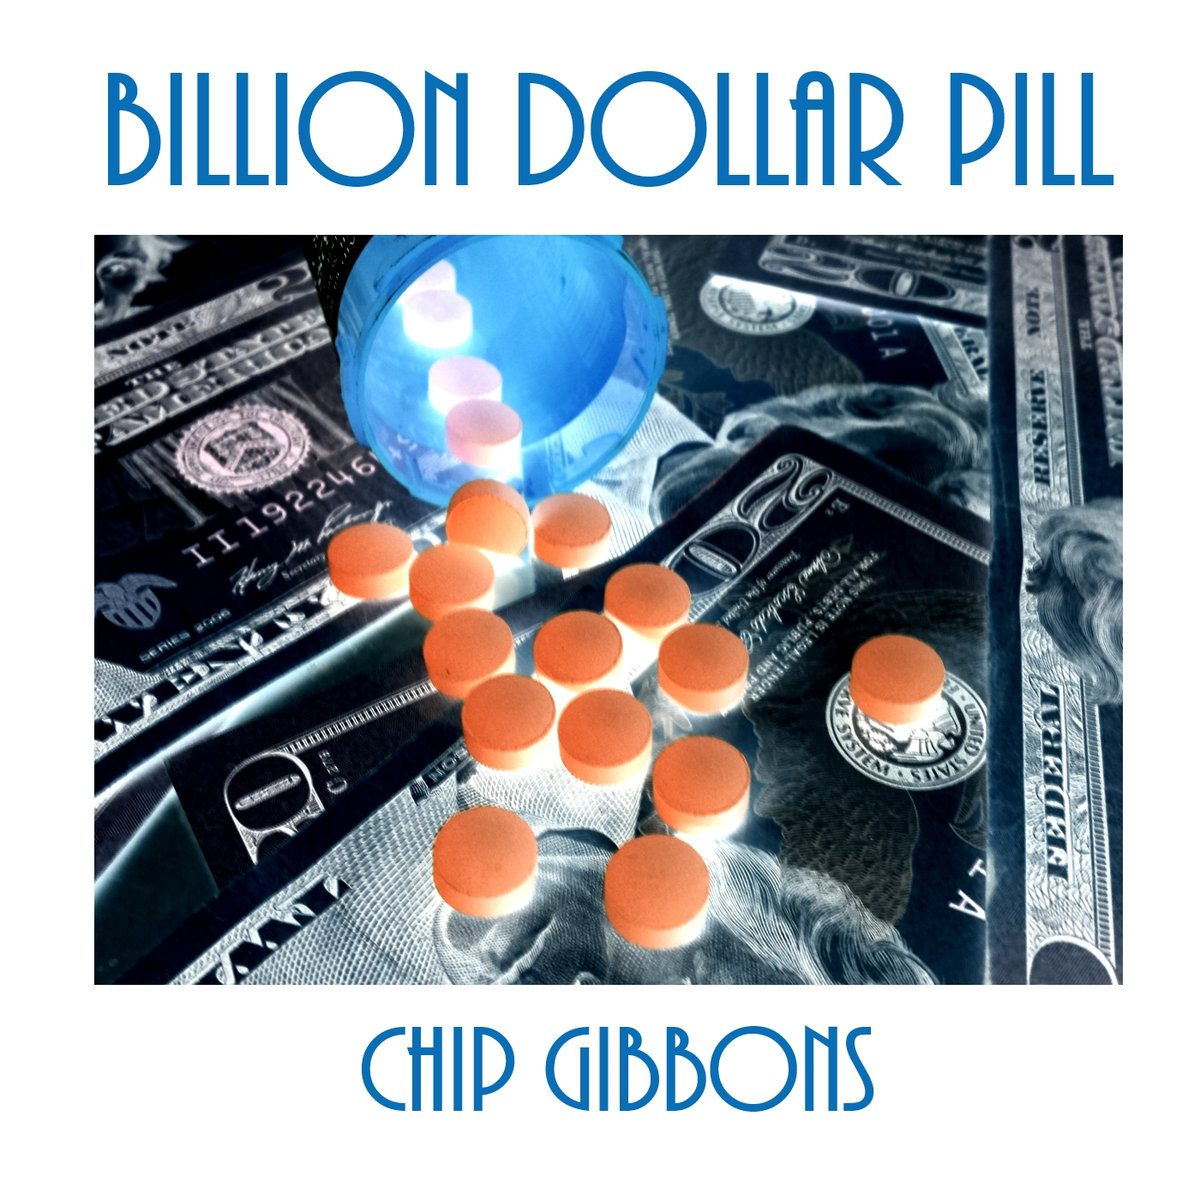 Chip Gibbons - Billion Dollar Pill CD Review